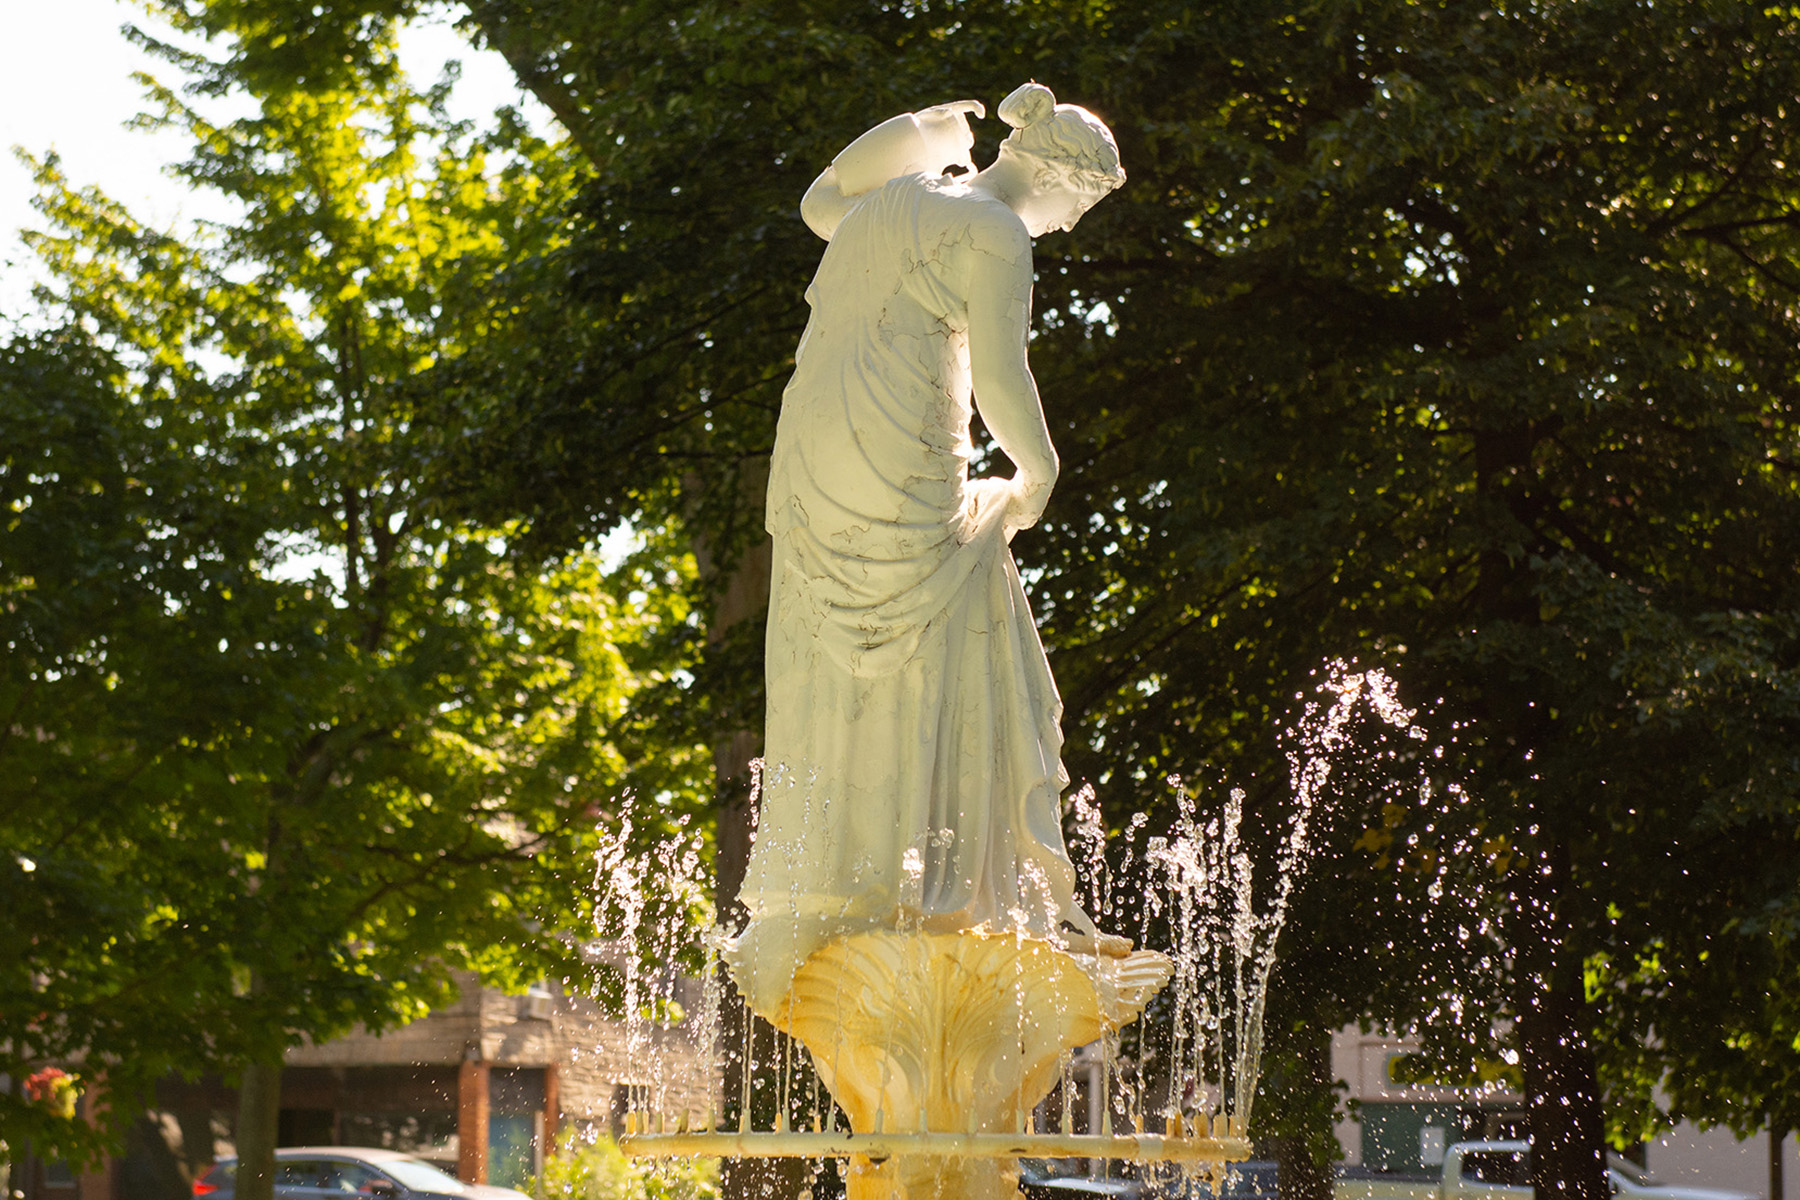 fountain in Gibson park in downtown North East